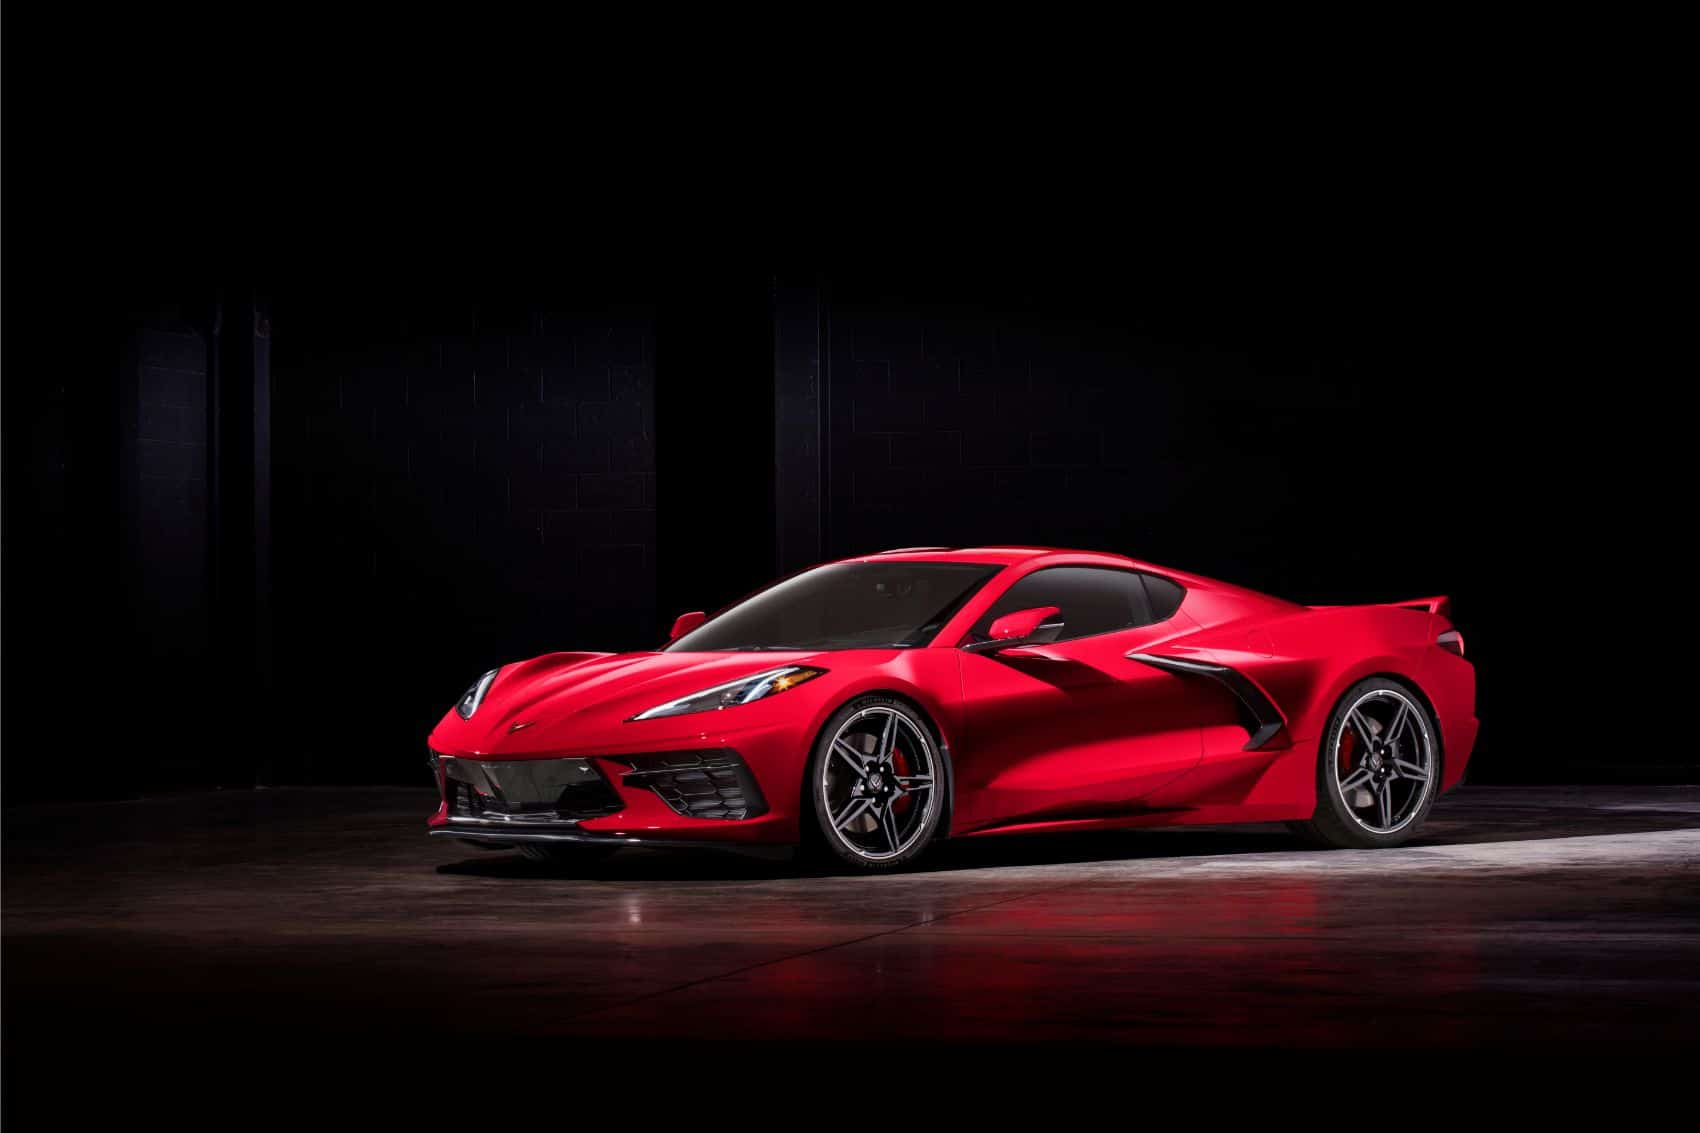 2020 Chevy Corvette Stingray: Finally, The Mid-Engine Vette